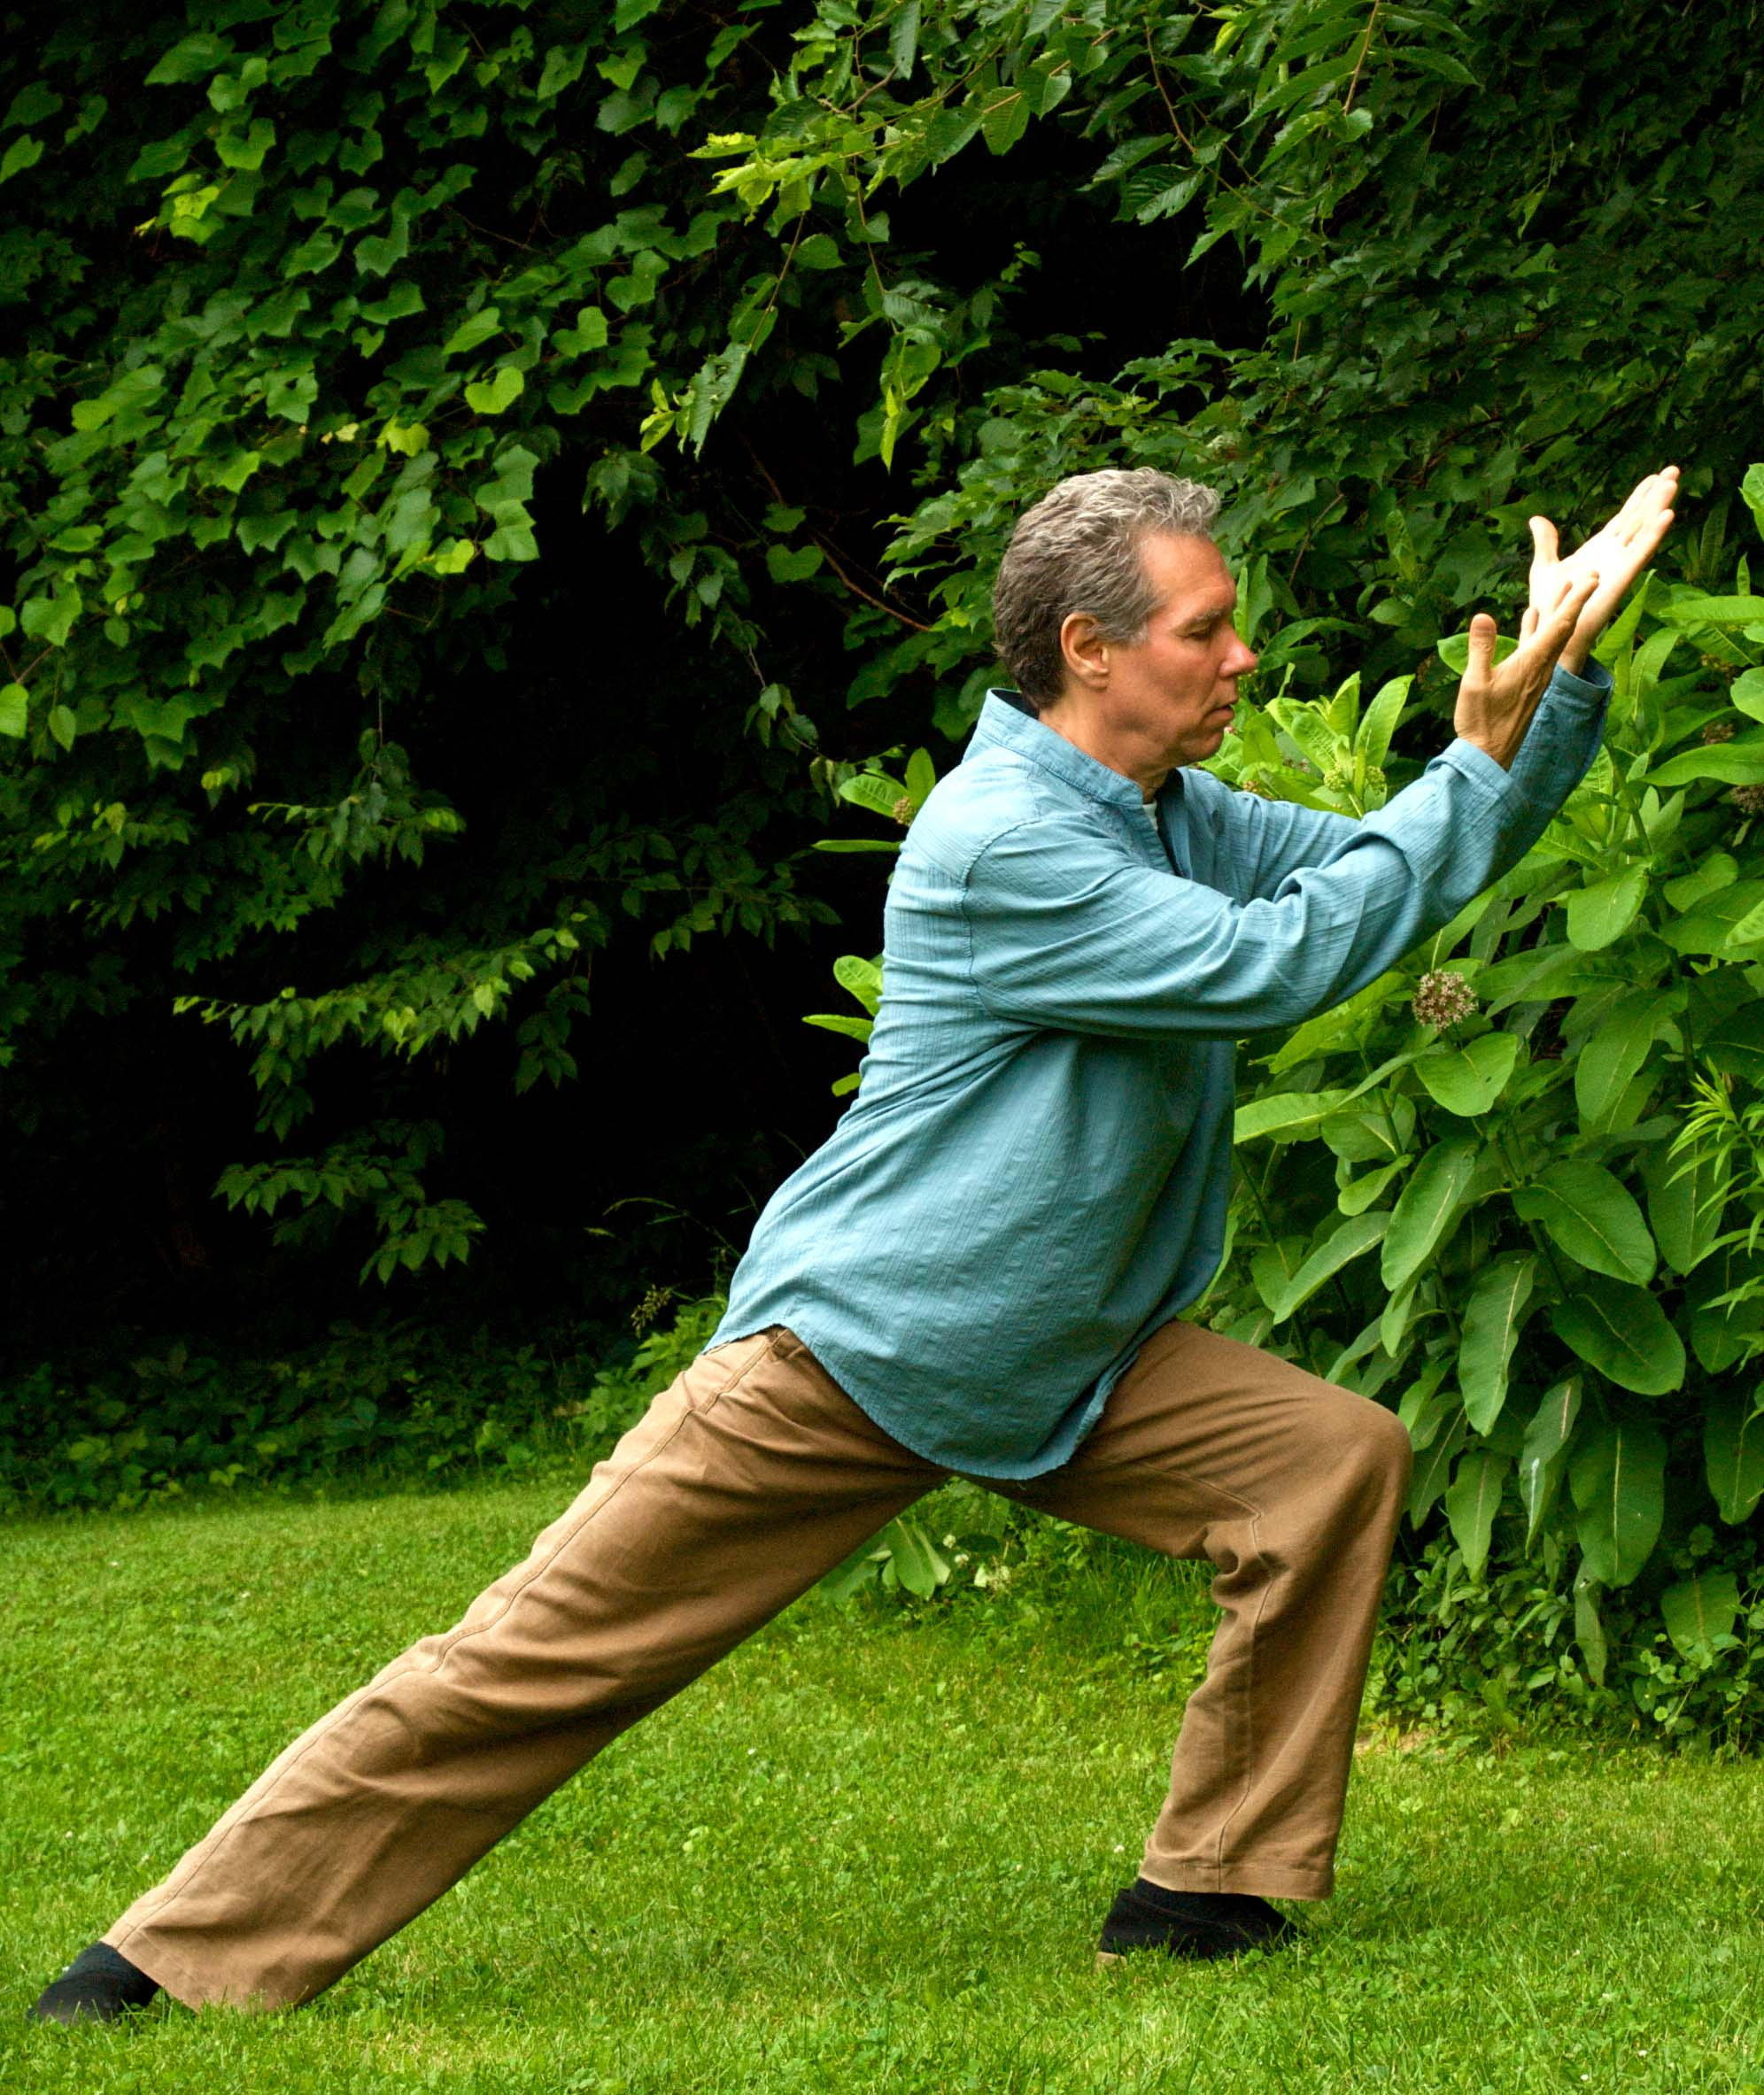 Dr Jahnke Doing Tai Chi